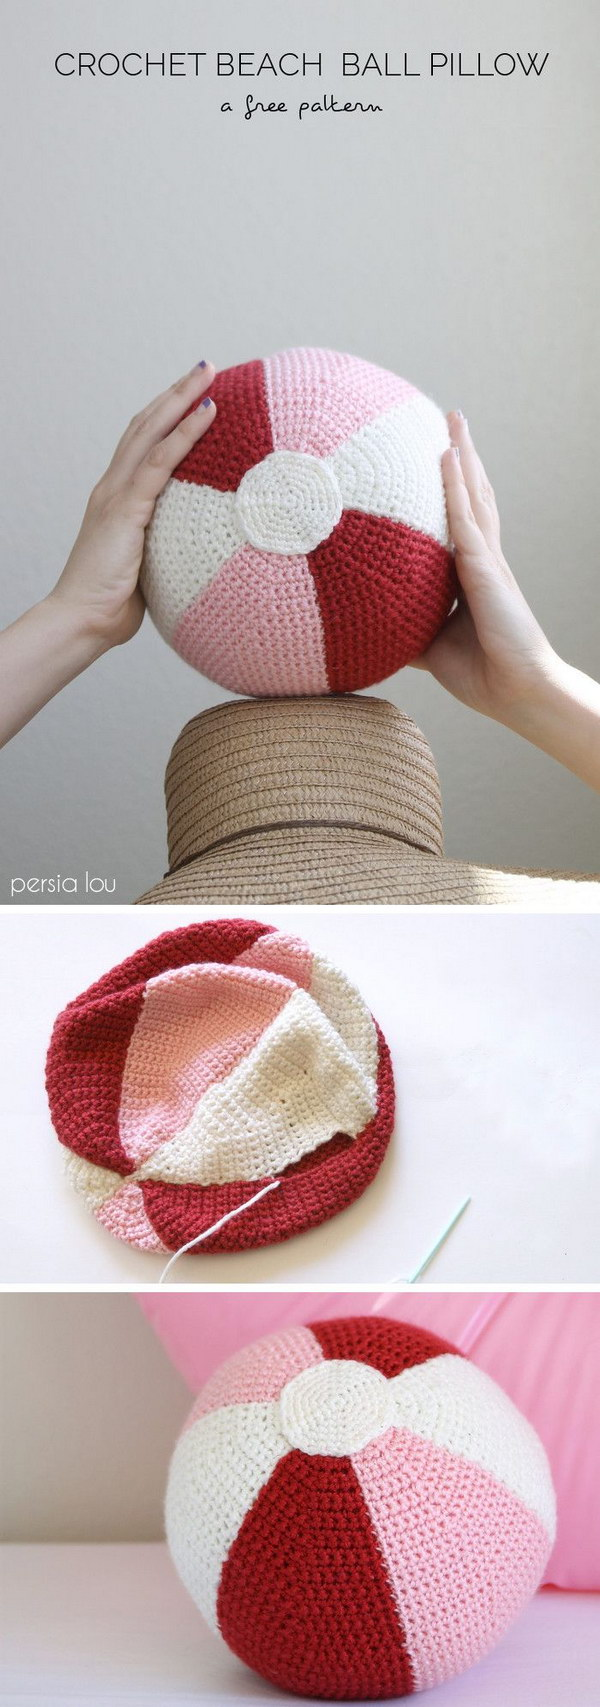 Creative Knitting and Crochet Projects You Would Love 2017